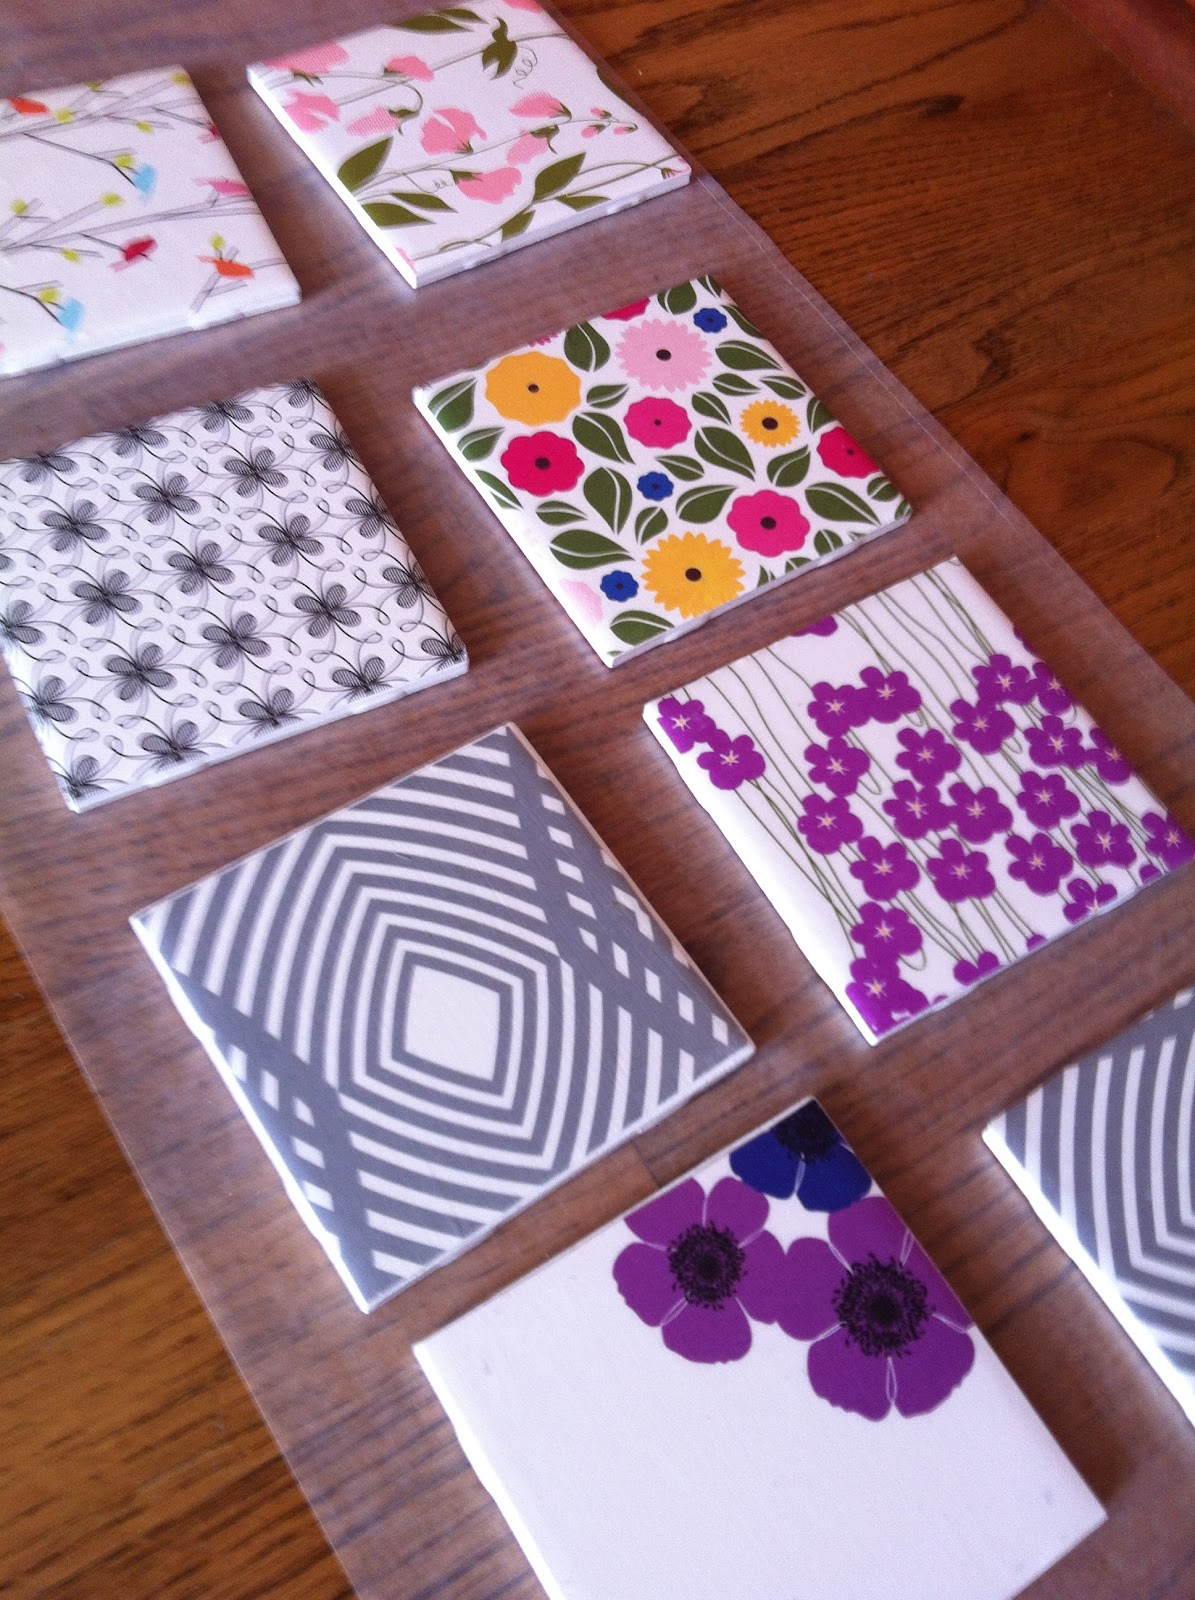 Diy Table Coasters Diy Night Coasters Coasters Coasters Design Improvised